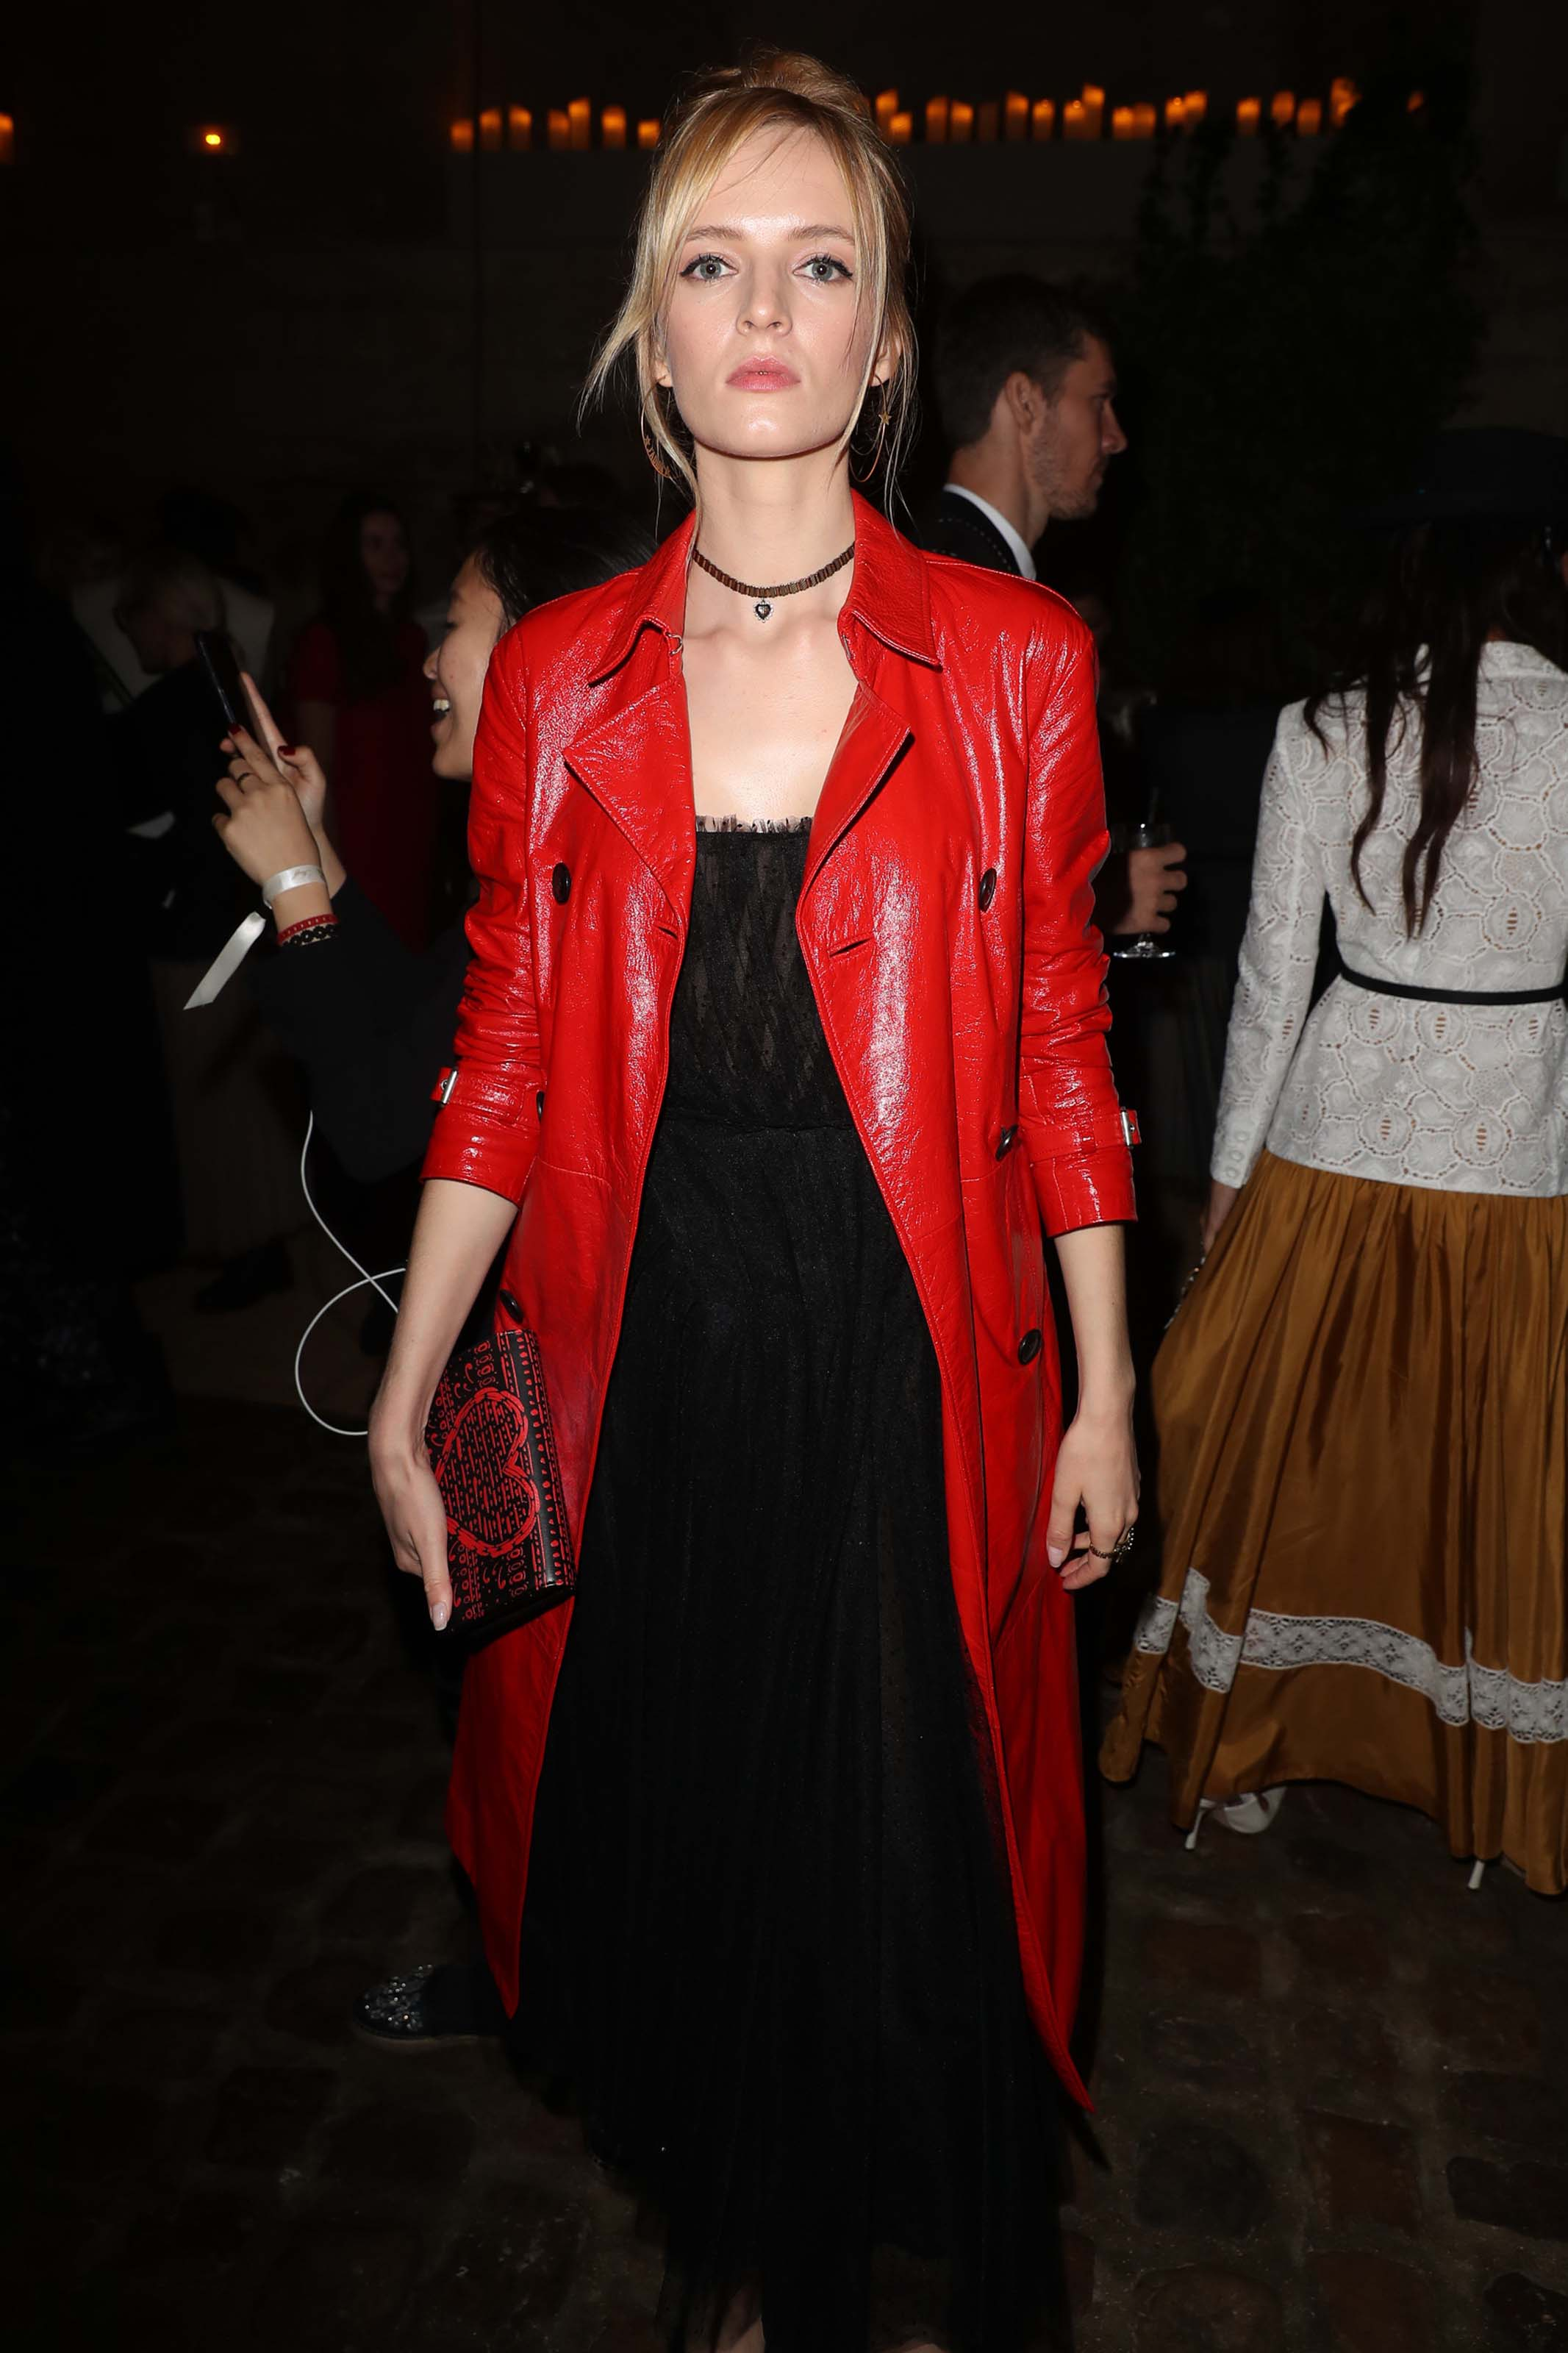 Daria Strokous attends Christian Dior Couture Cruise Collection Photocall